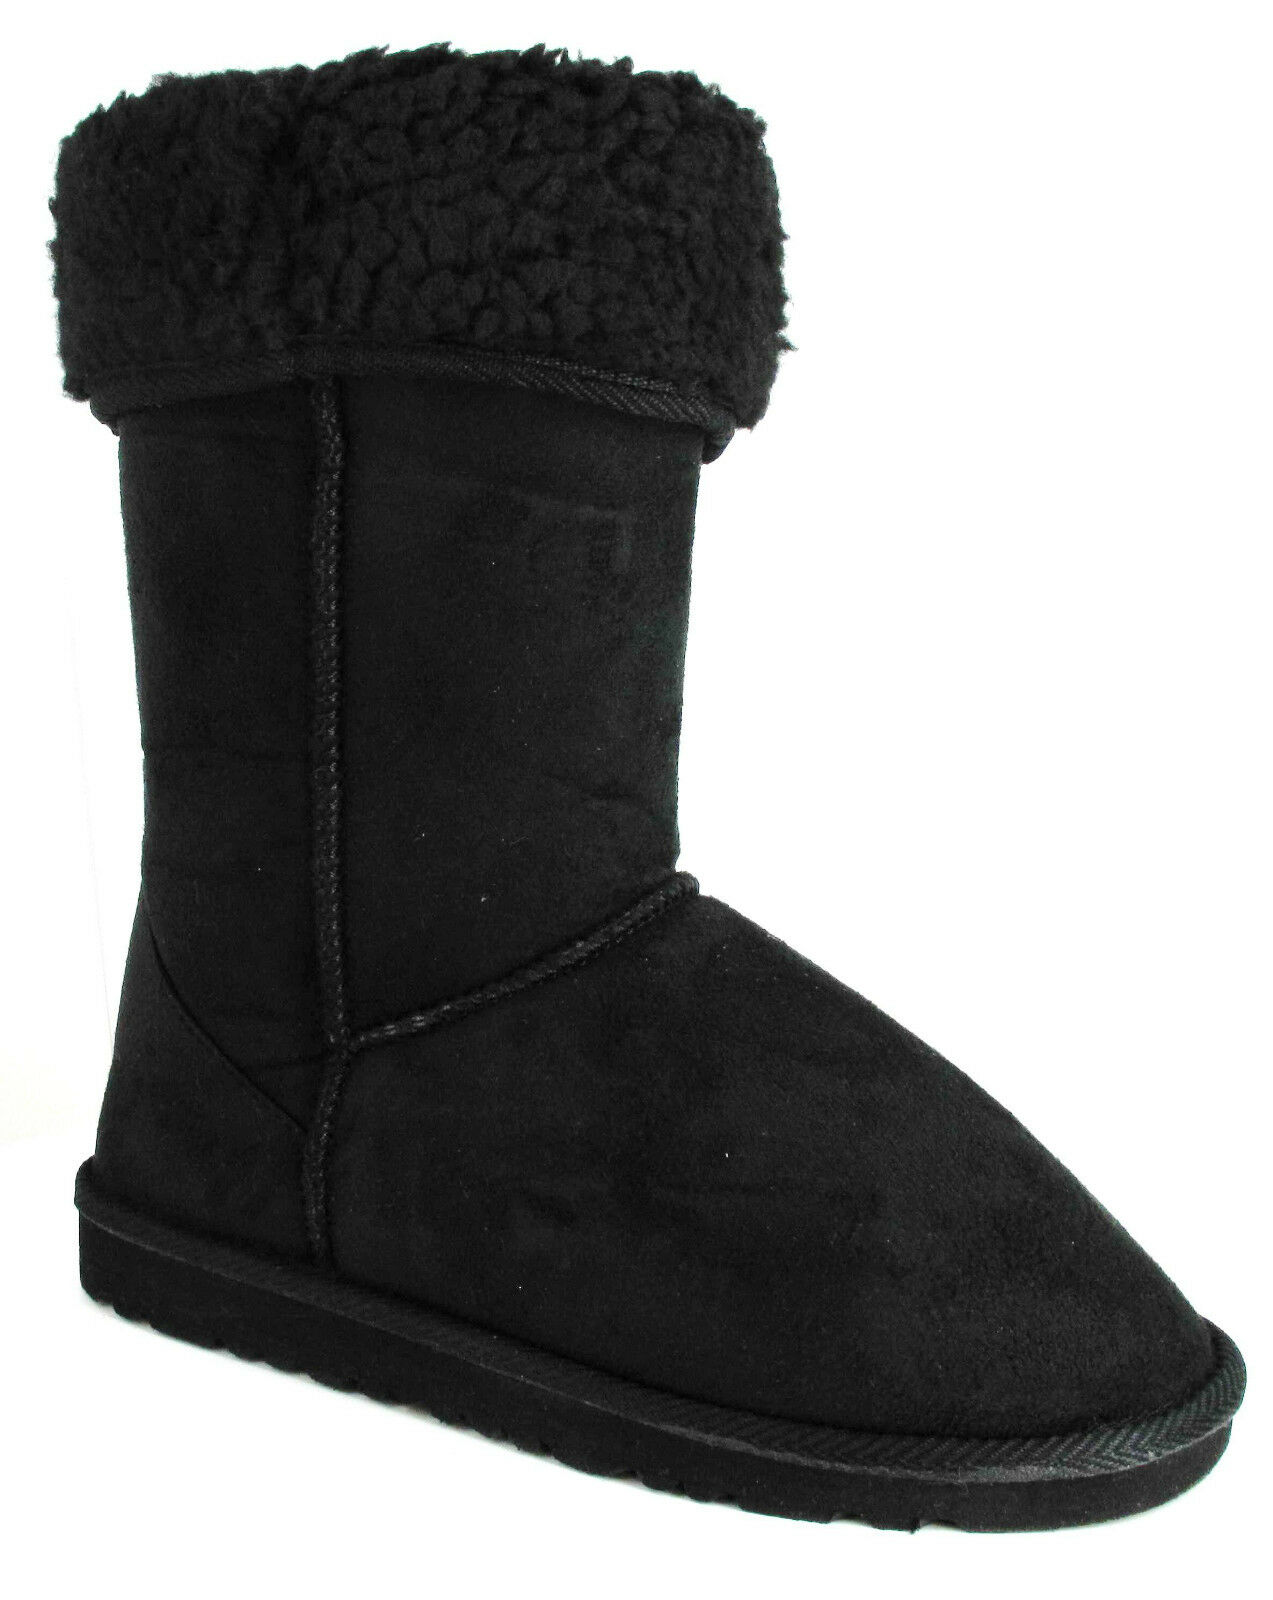 NEW WOMENS LADIES BLACK MID CLAF FAUX SUEDE FUR LINED WINTER BOOTS SIZE UK 888